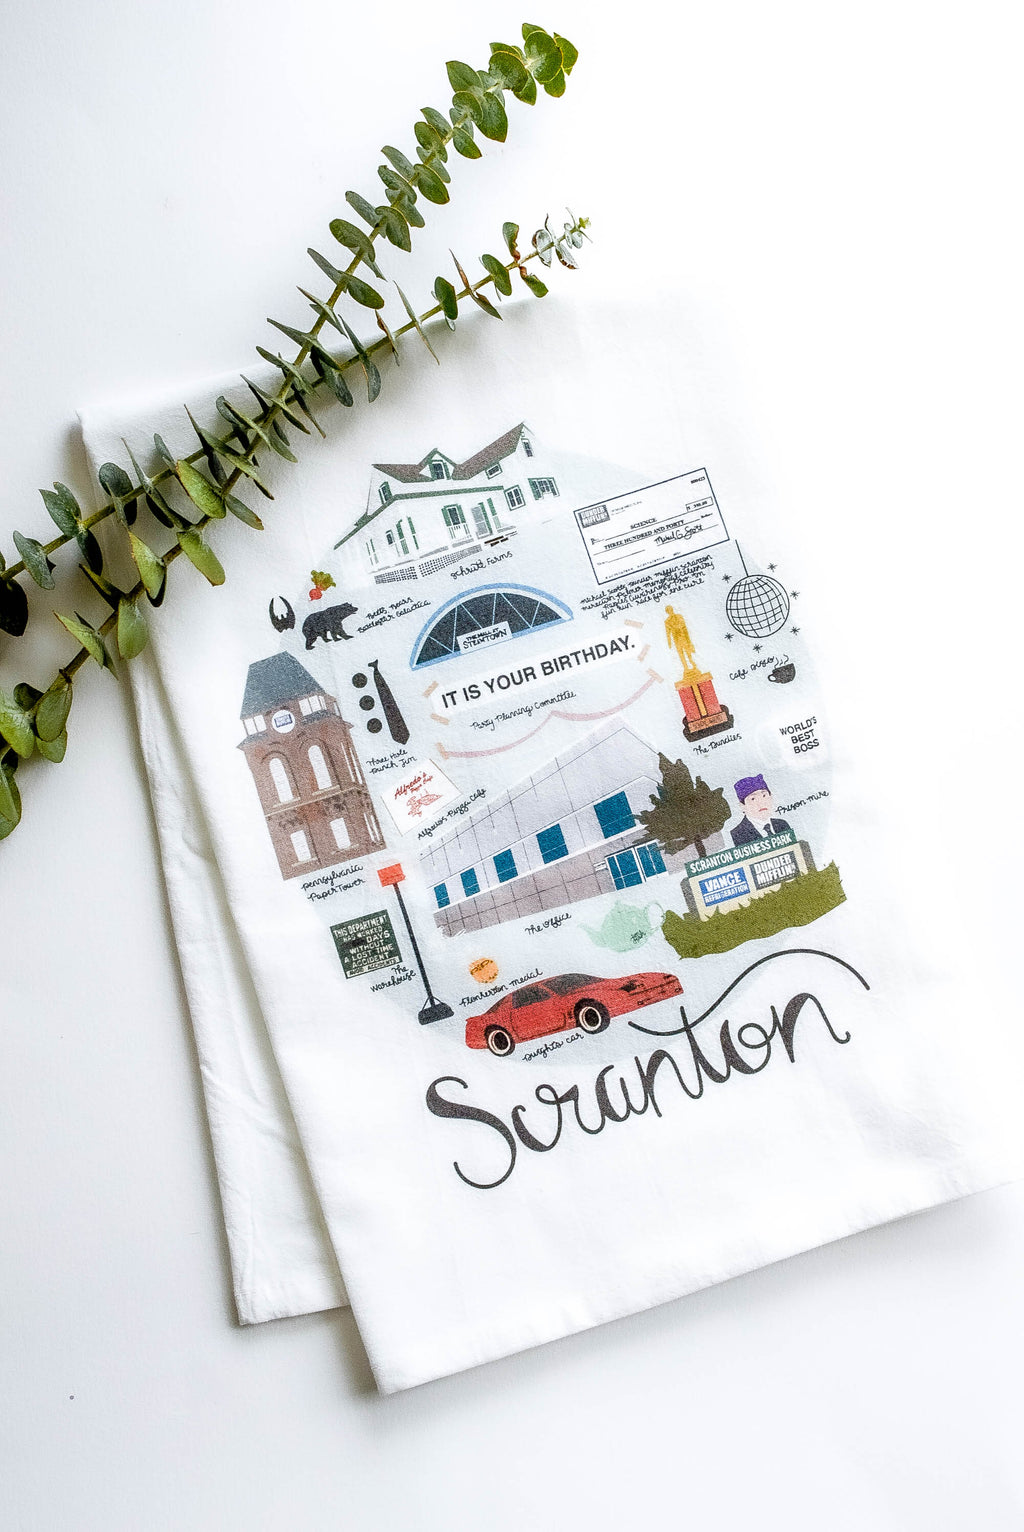 Scranton 'The Office' Tea Towel